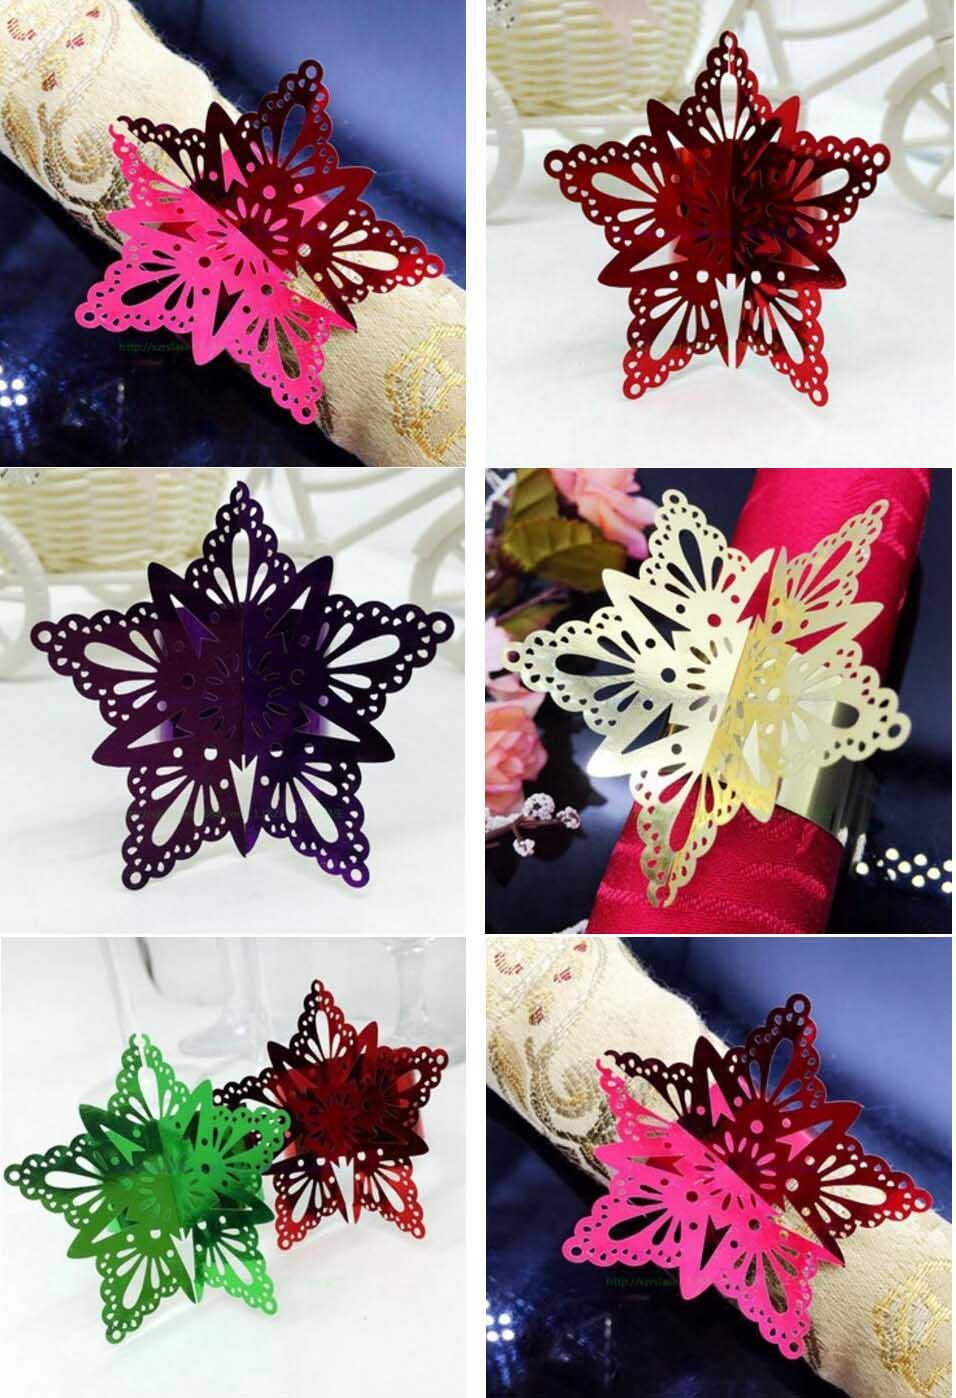 Paper Star Flower Napkin Ring Serviette Buckle Holder For Wedding